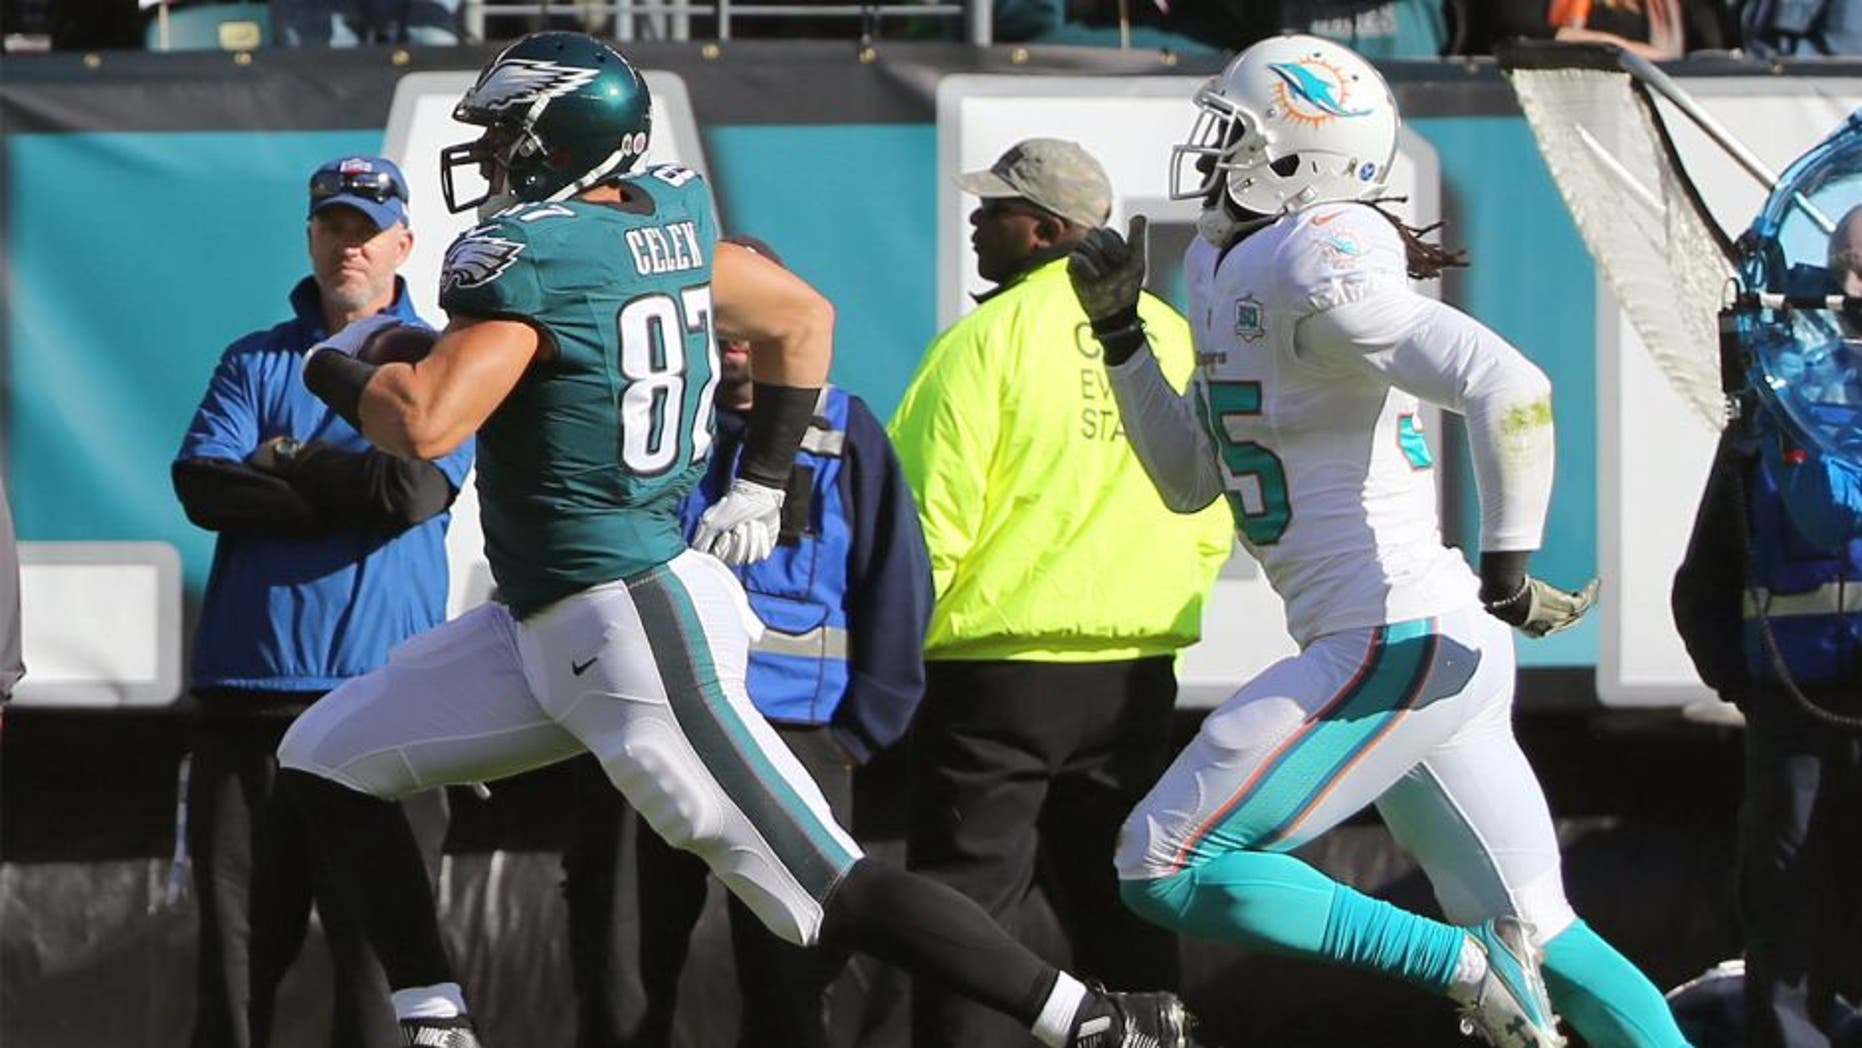 Nov 15, 2015; Philadelphia, PA, USA; Philadelphia Eagles tight end Brent Celek (87) carries the ball after a catch against the Miami Dolphins during the first quarter at Lincoln Financial Field. Mandatory Credit: Jeffrey G. Pittenger-USA TODAY Sports